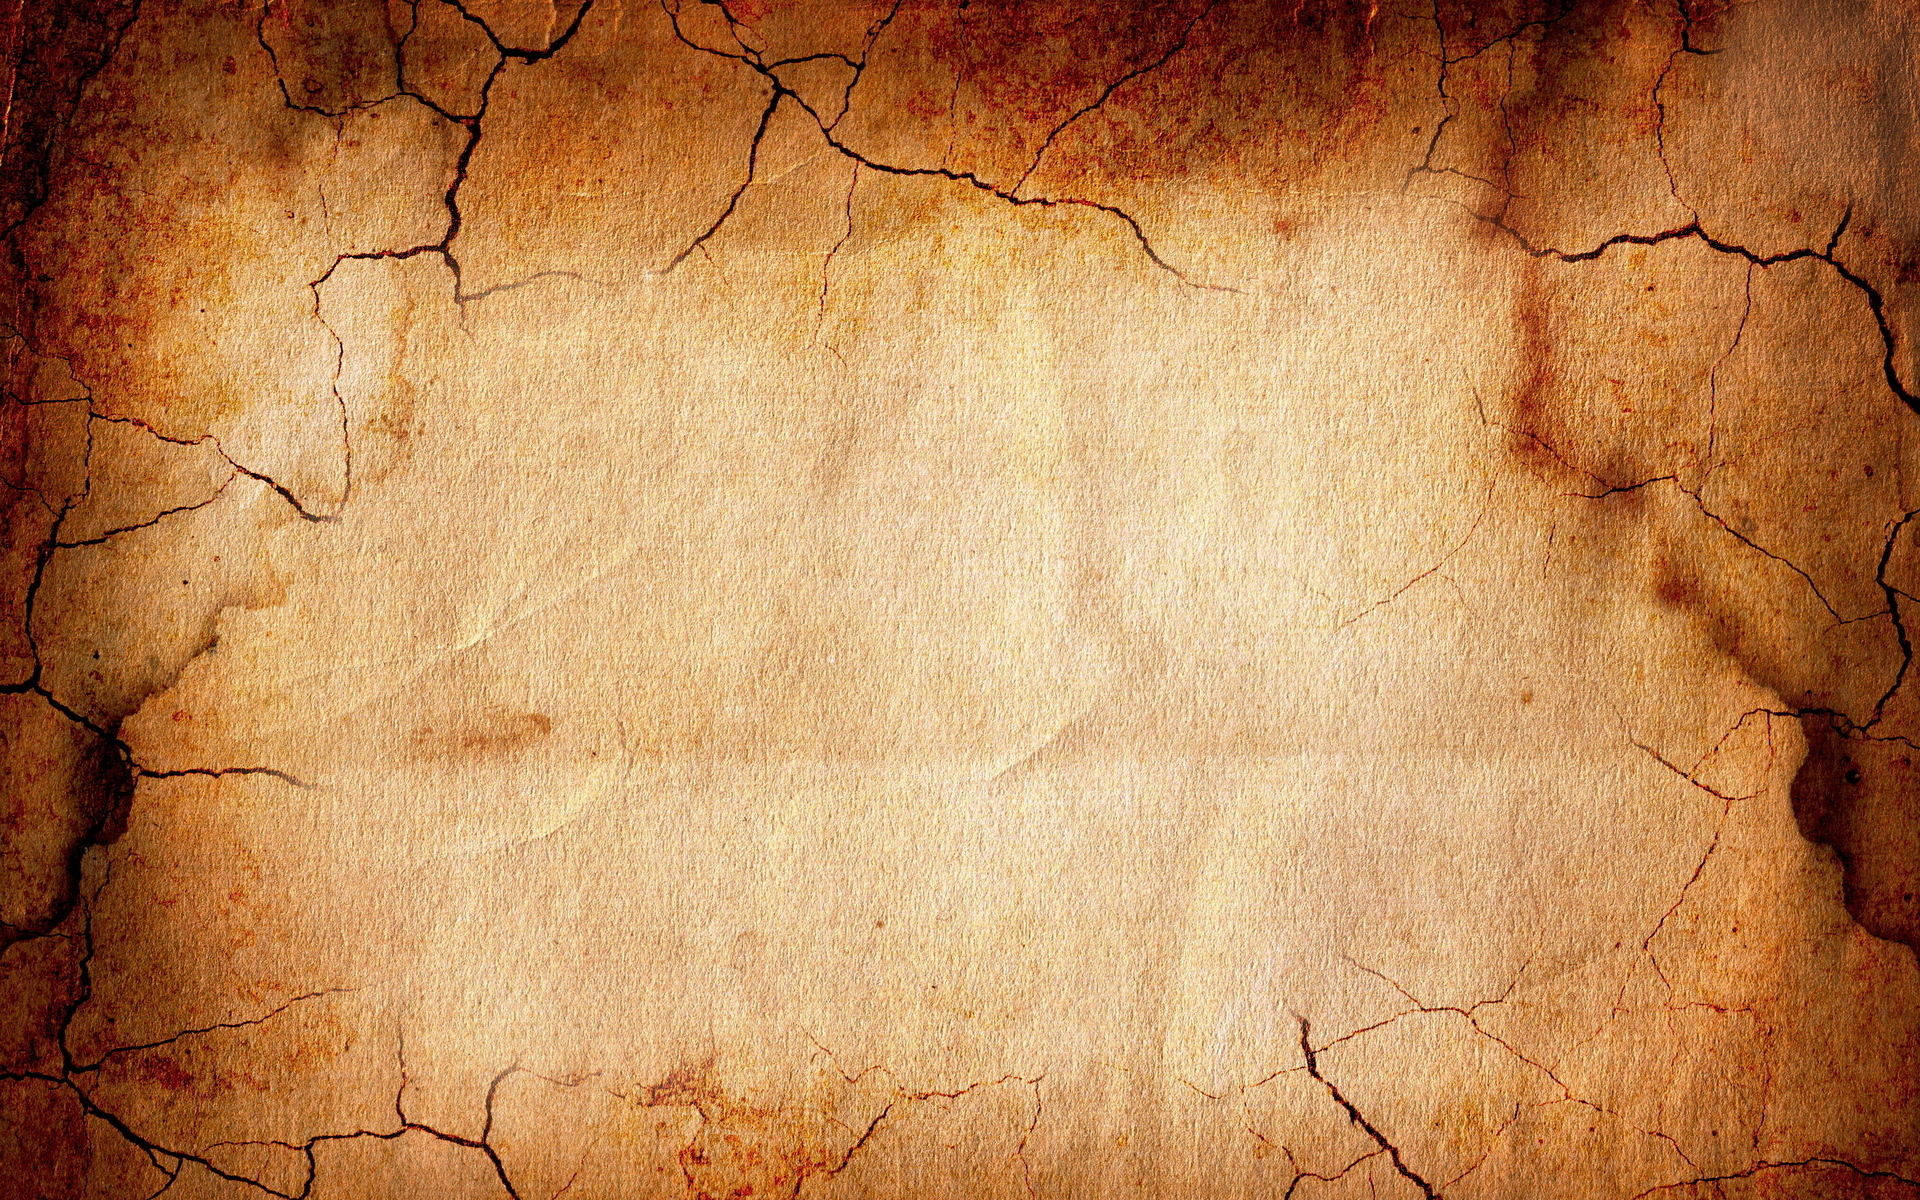 39 Brown HD Wallpapers/Backgrounds For Free Download, SHunVMall